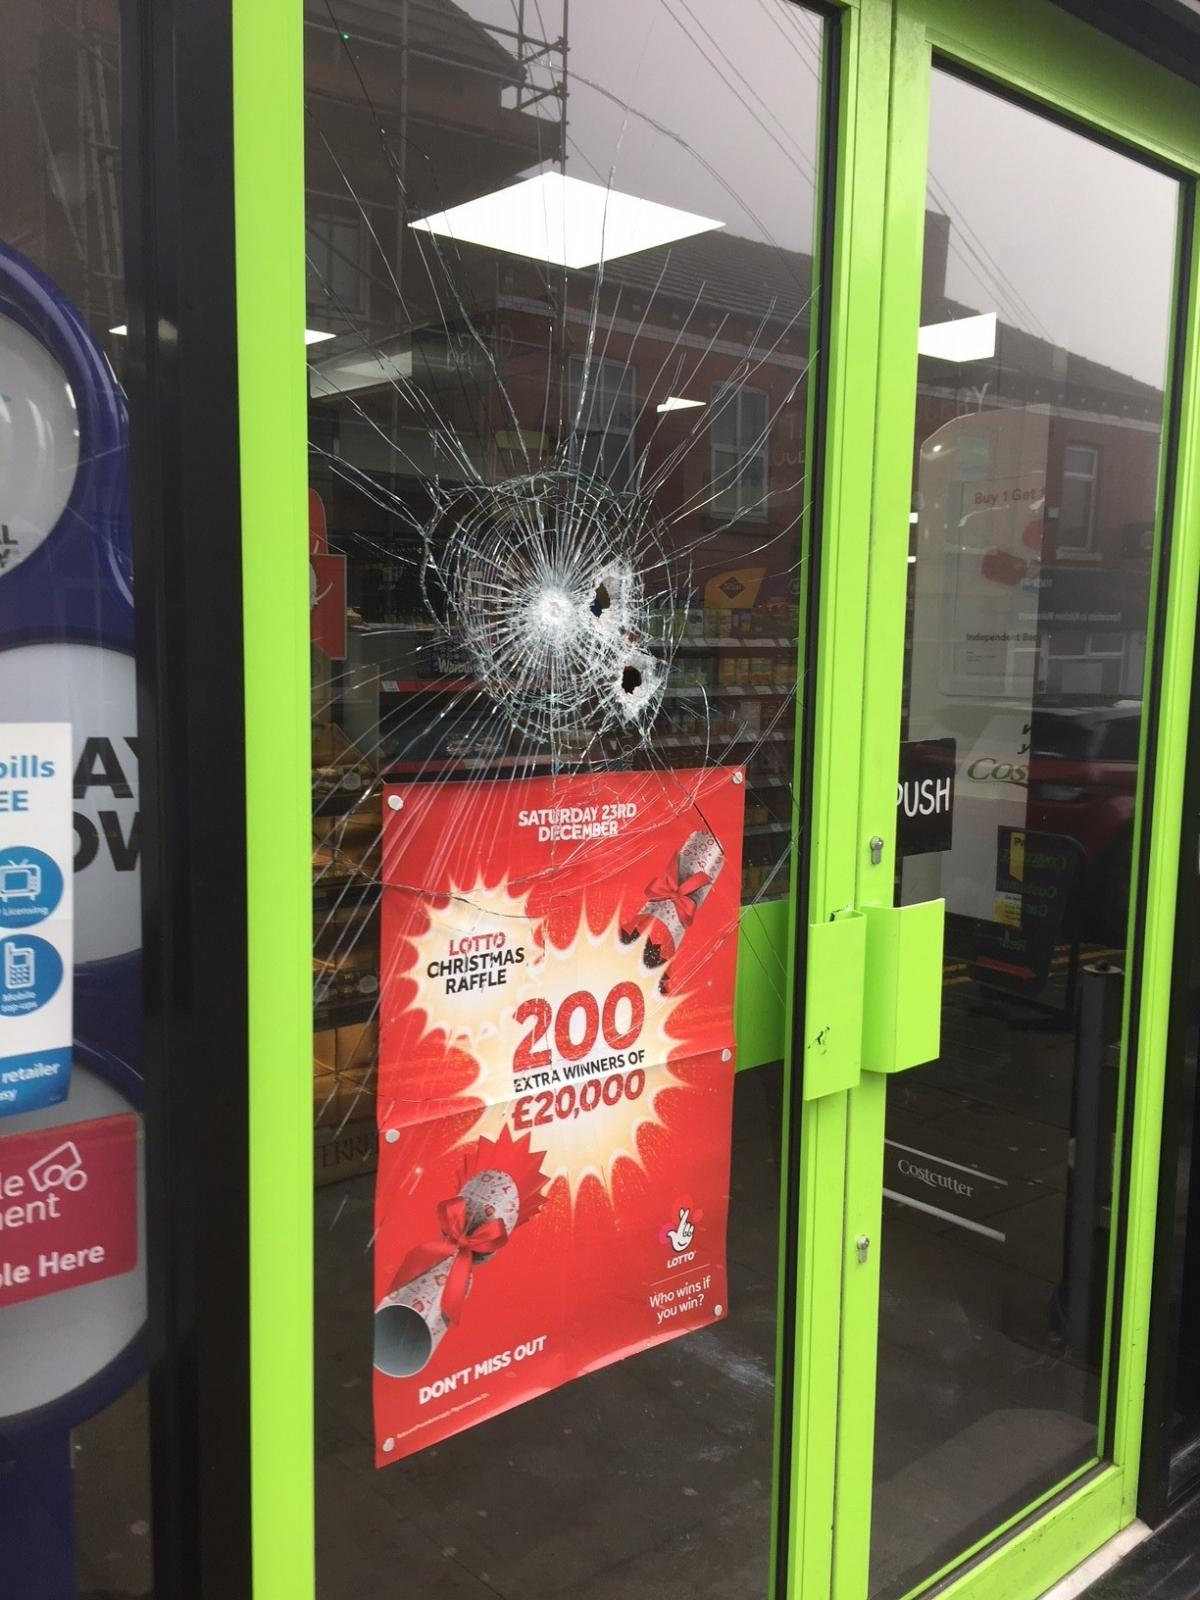 Westhoughton shops targeted within 20 minutes | The Bolton News